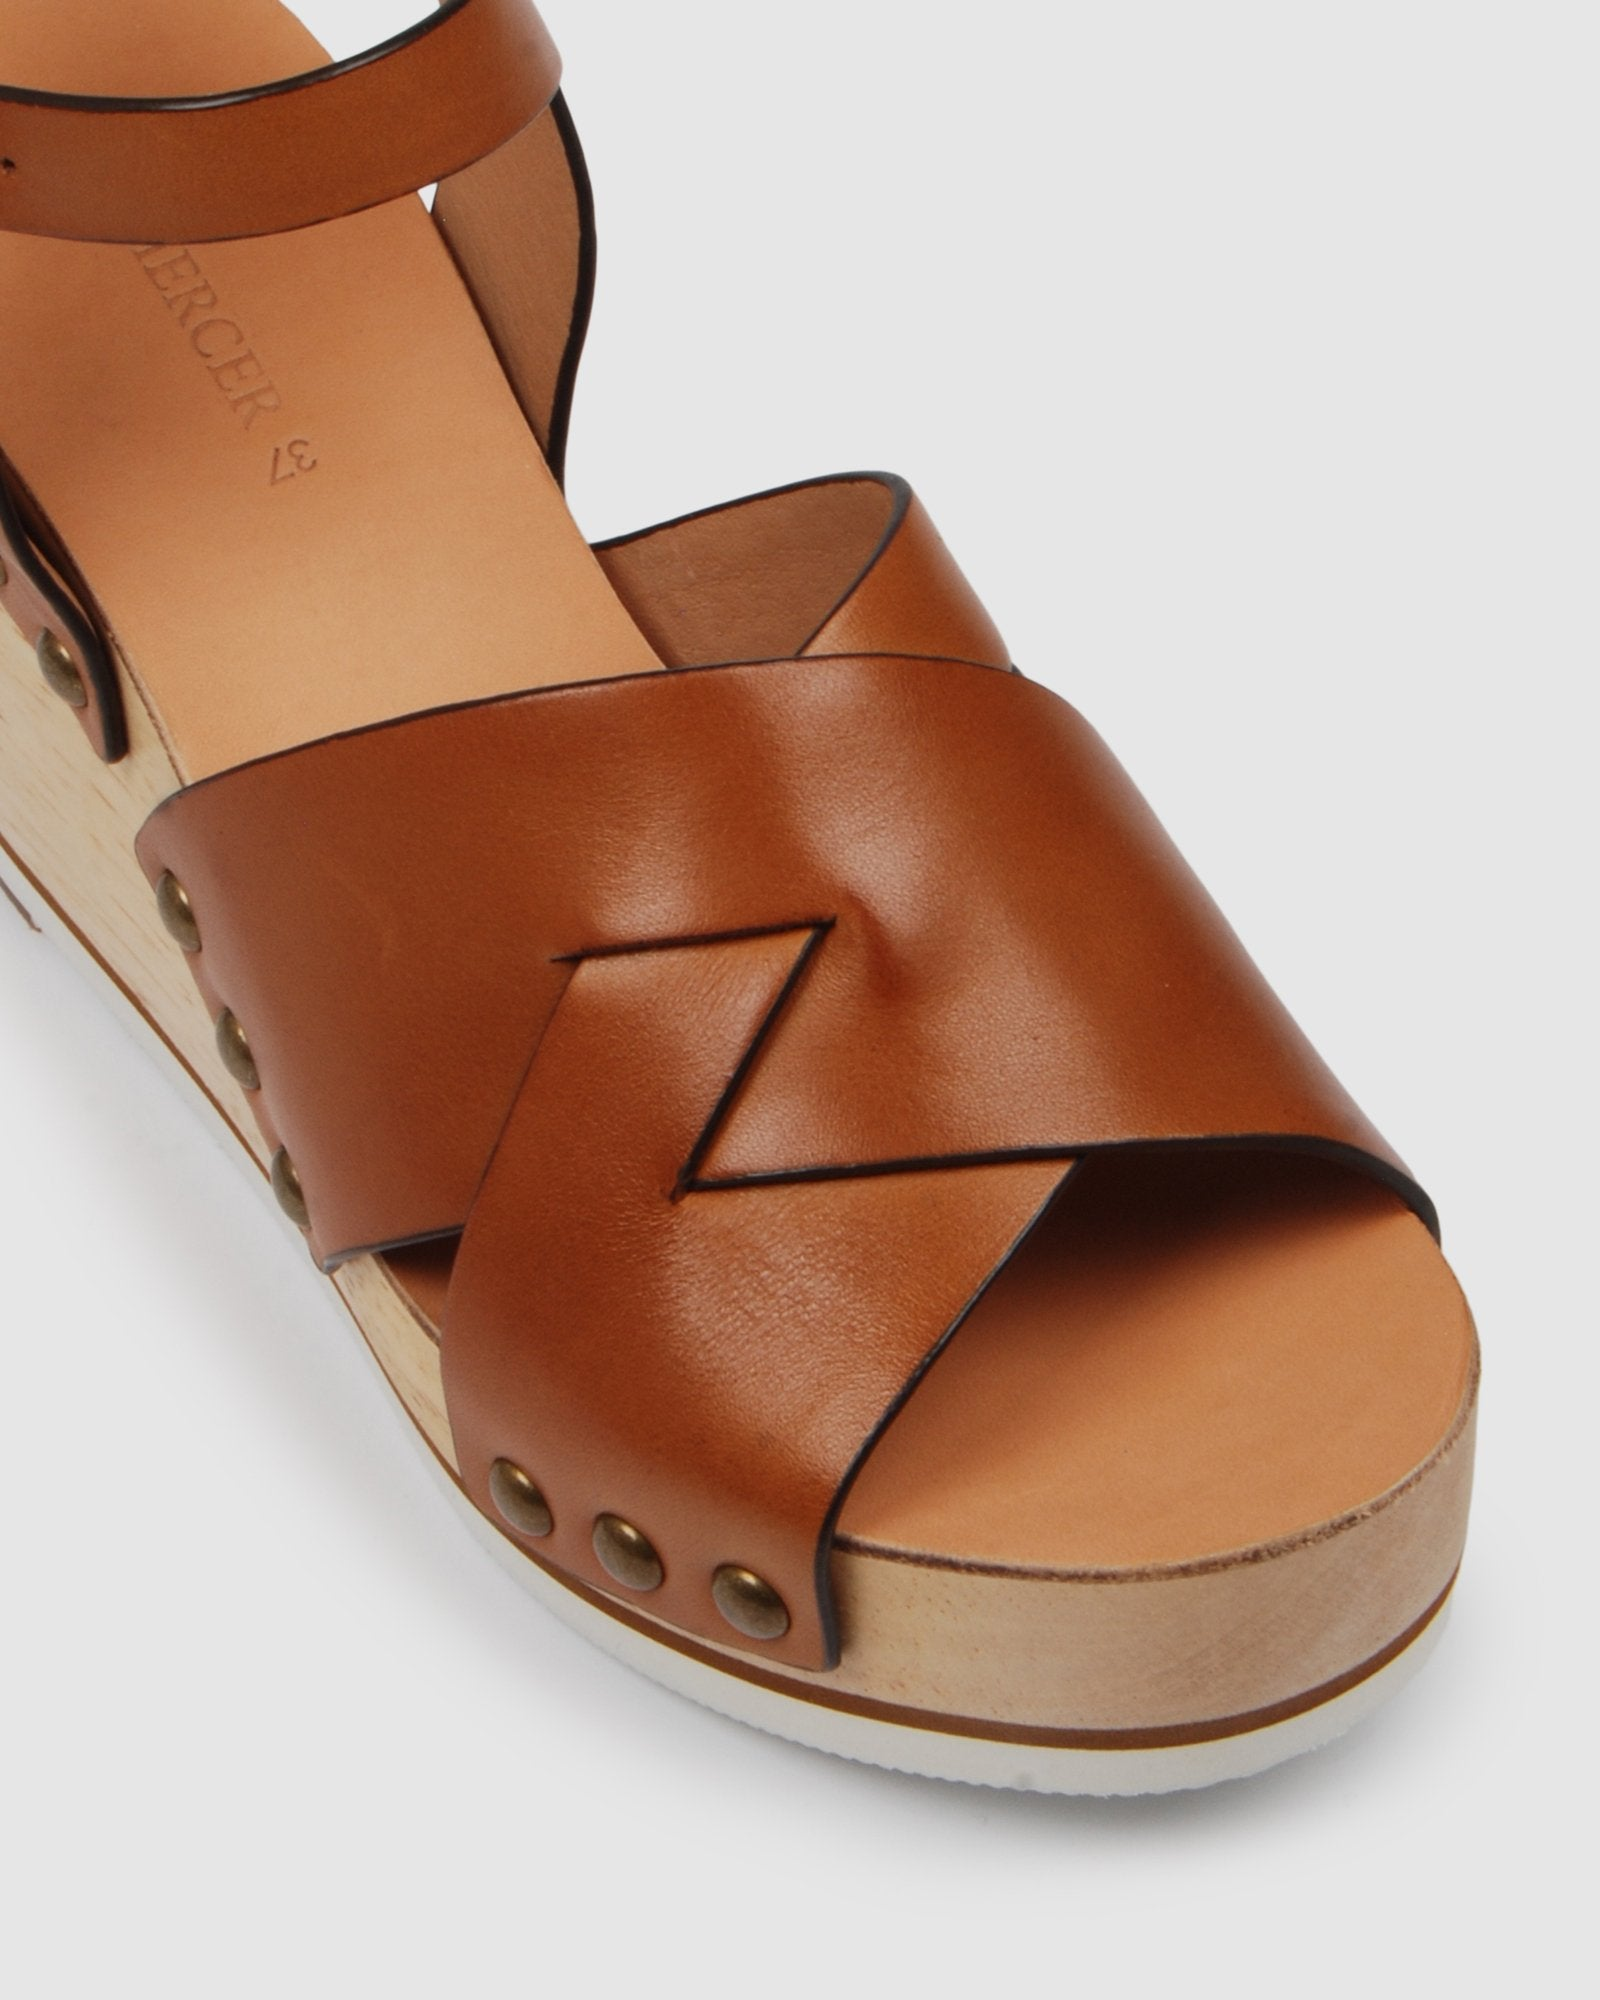 MALIBU HIGH HEEL SANDALS TAN LEATHER